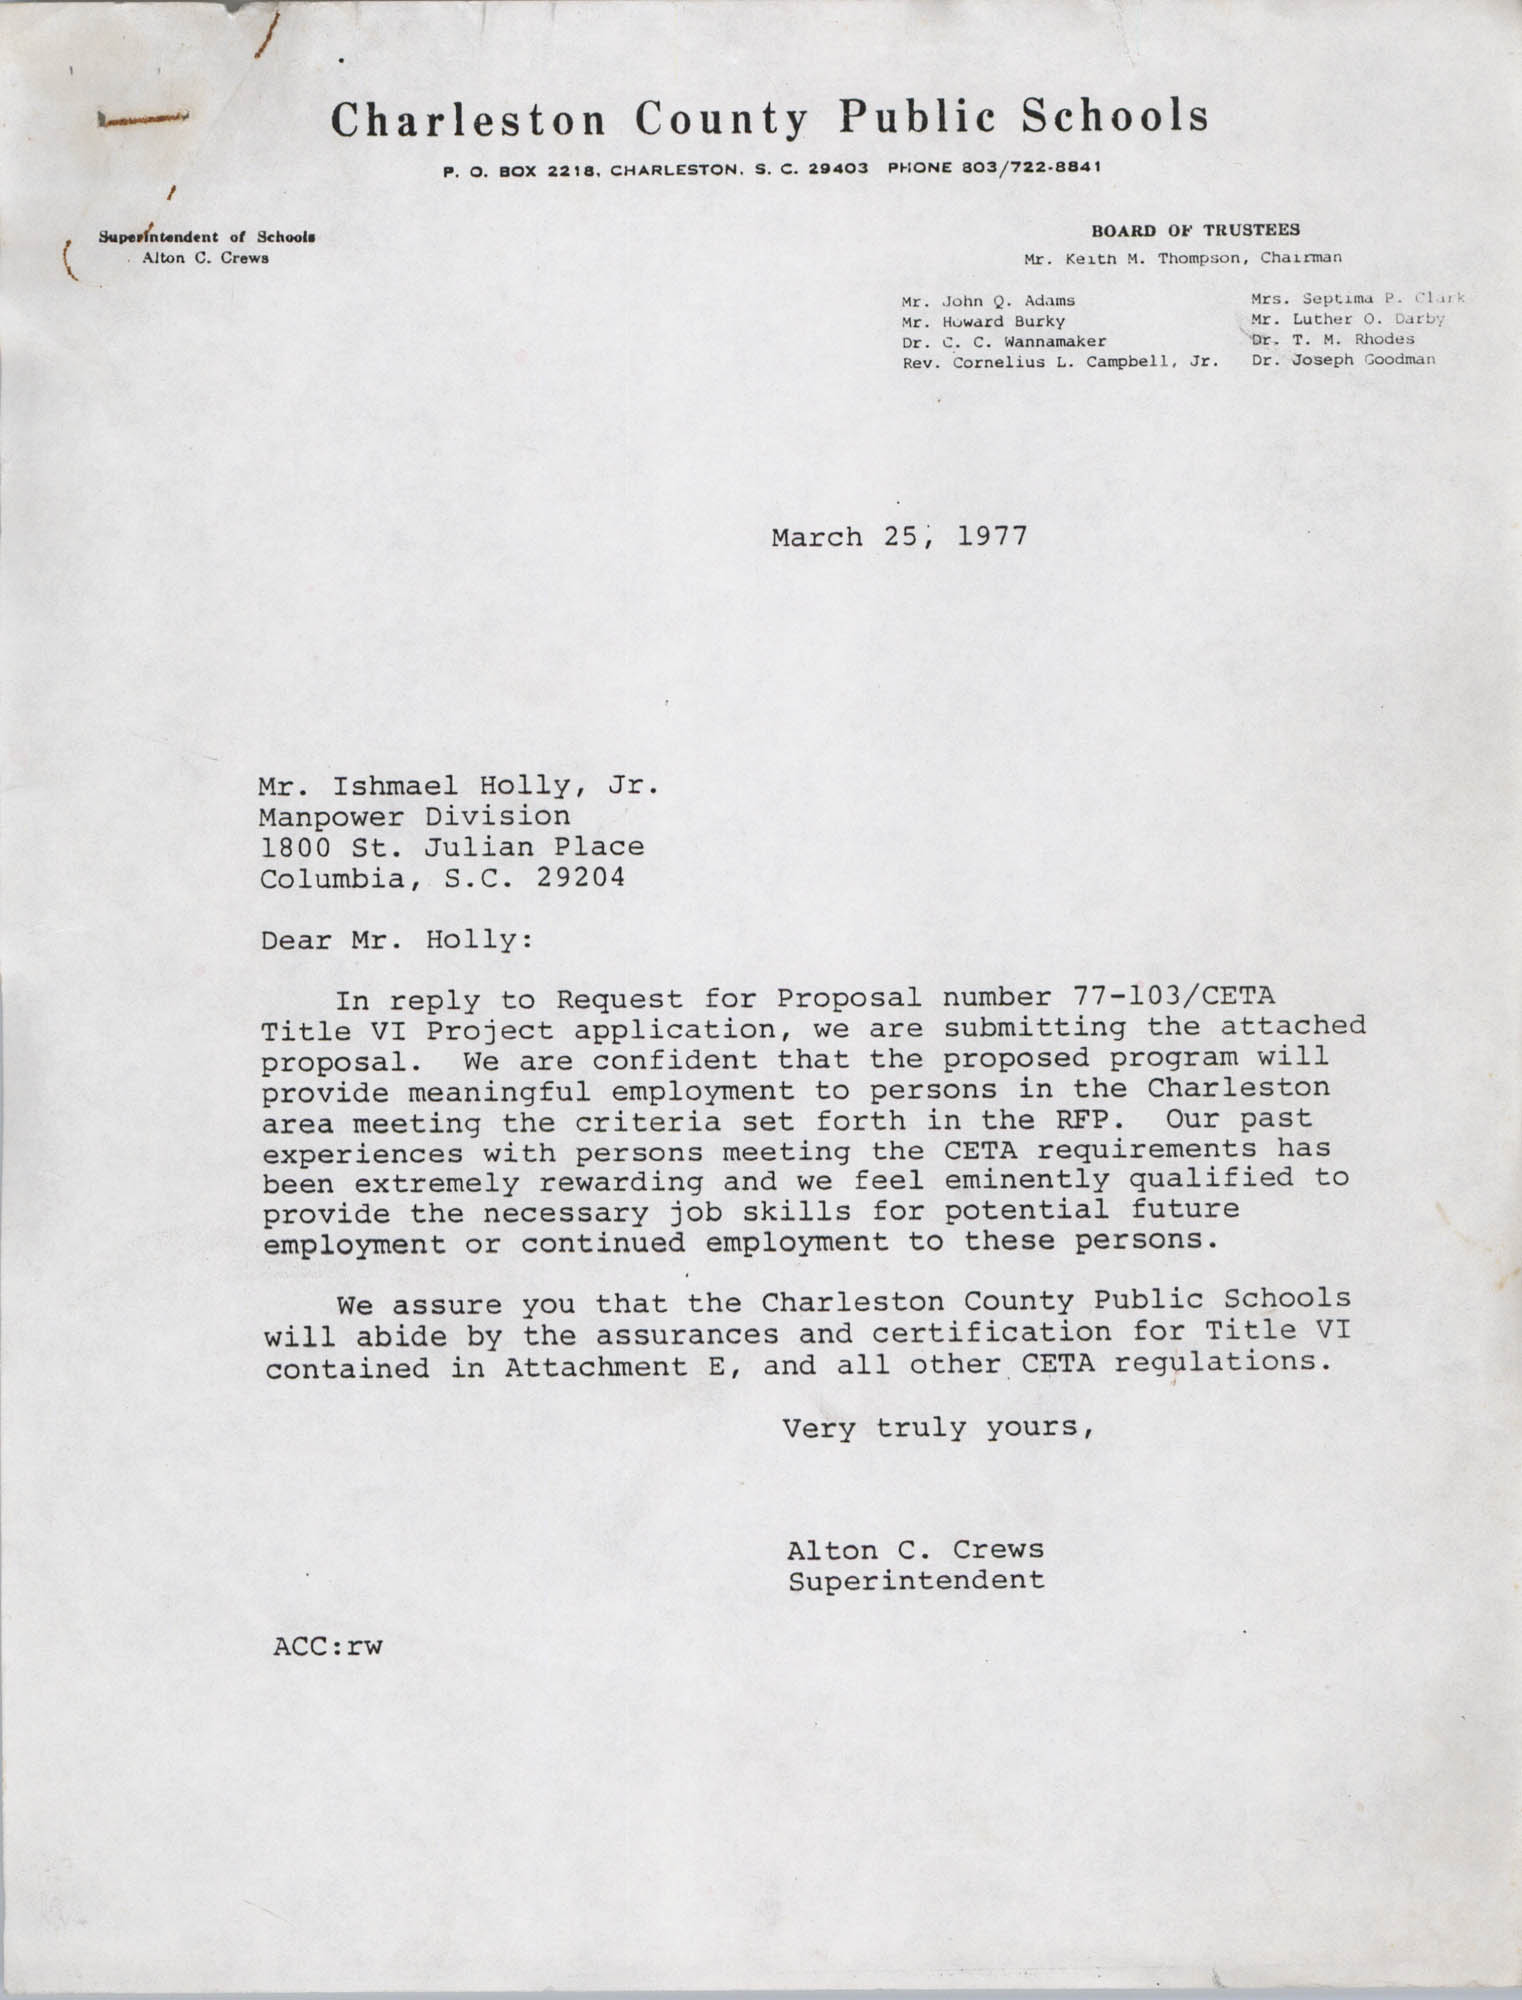 Letter from Alton C. Crews to Ishmael Holly, Jr., March 25, 1977